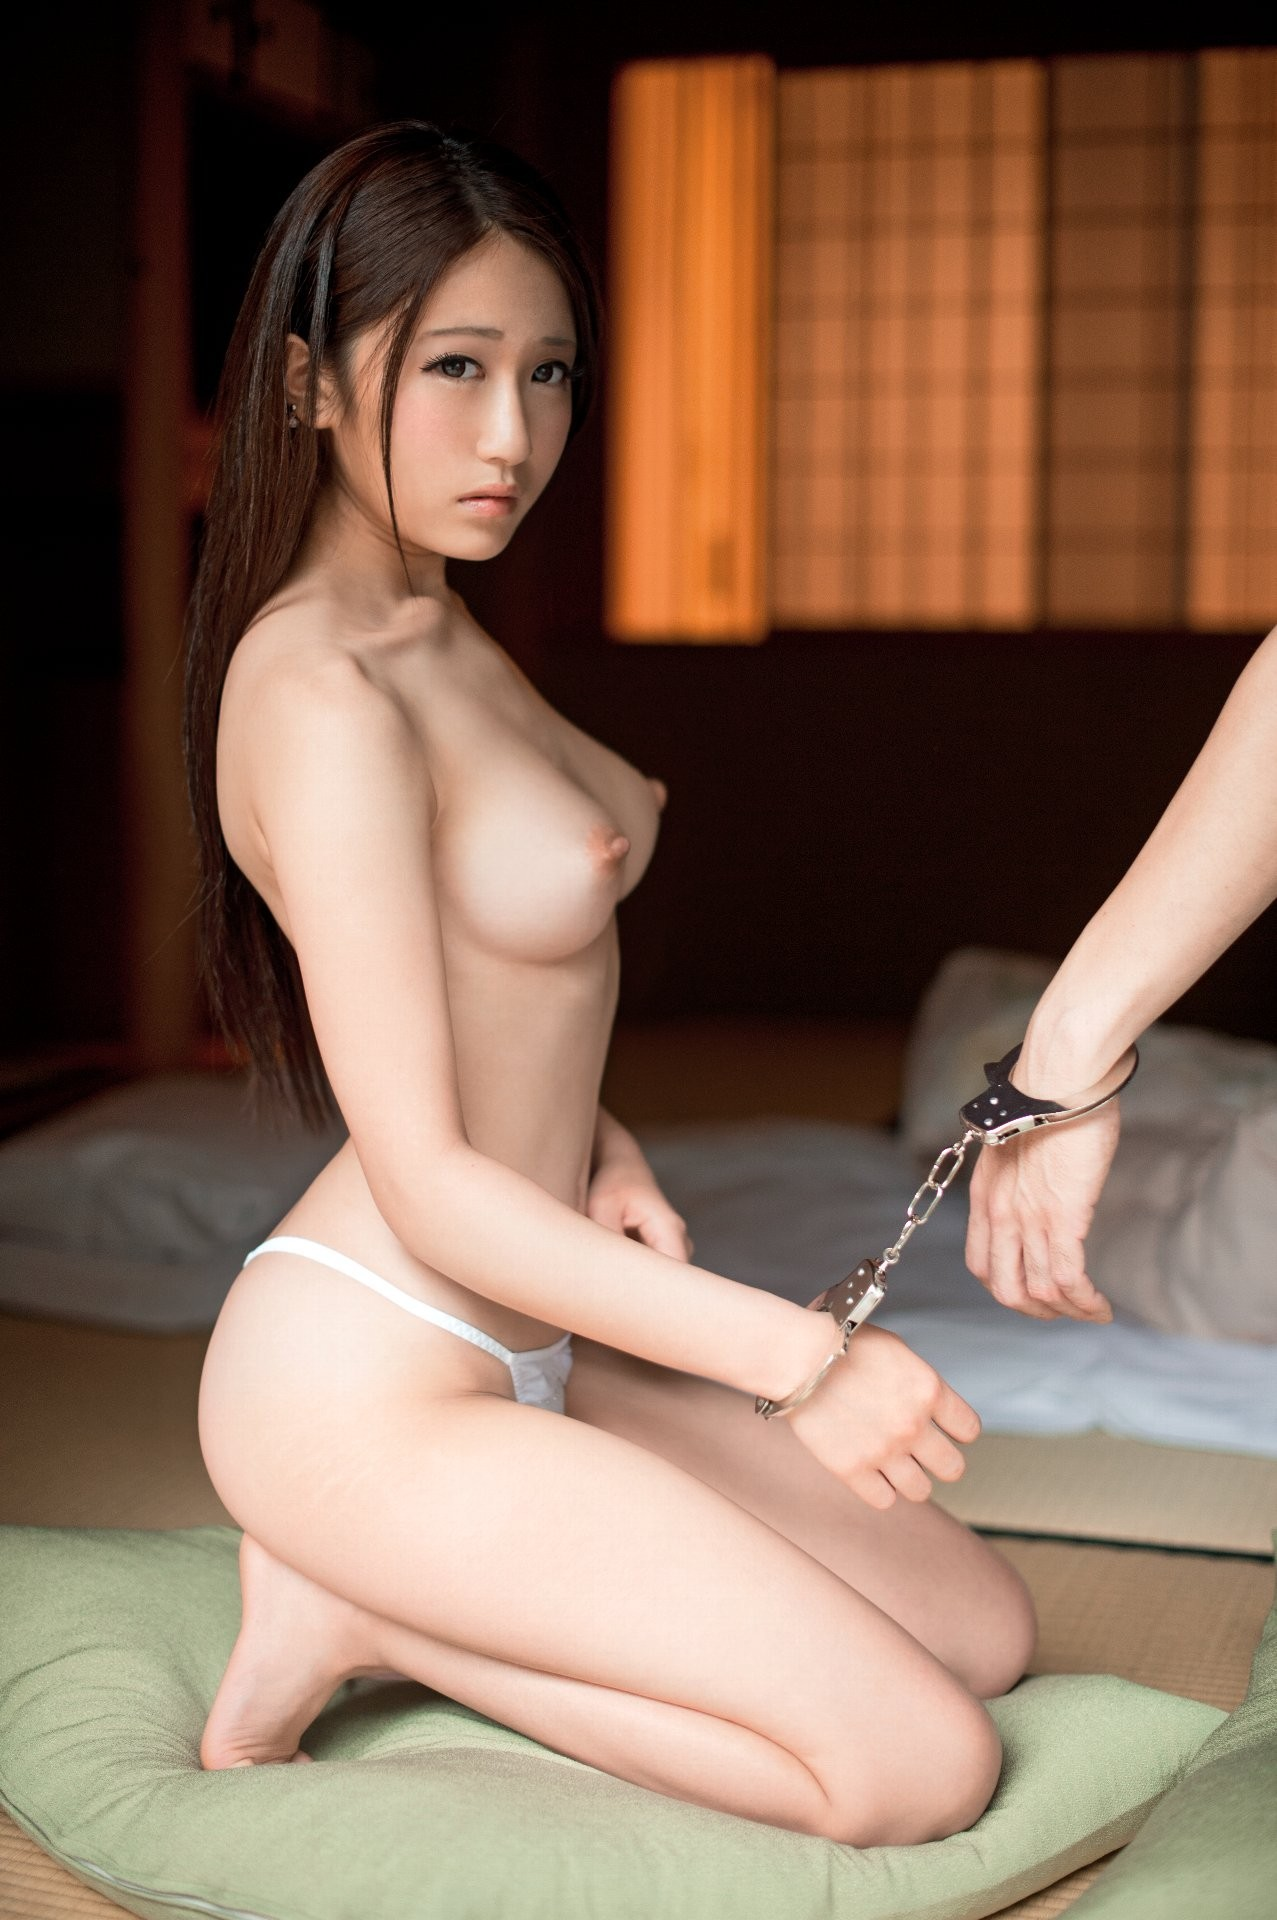 Hot Hd Asian Porn